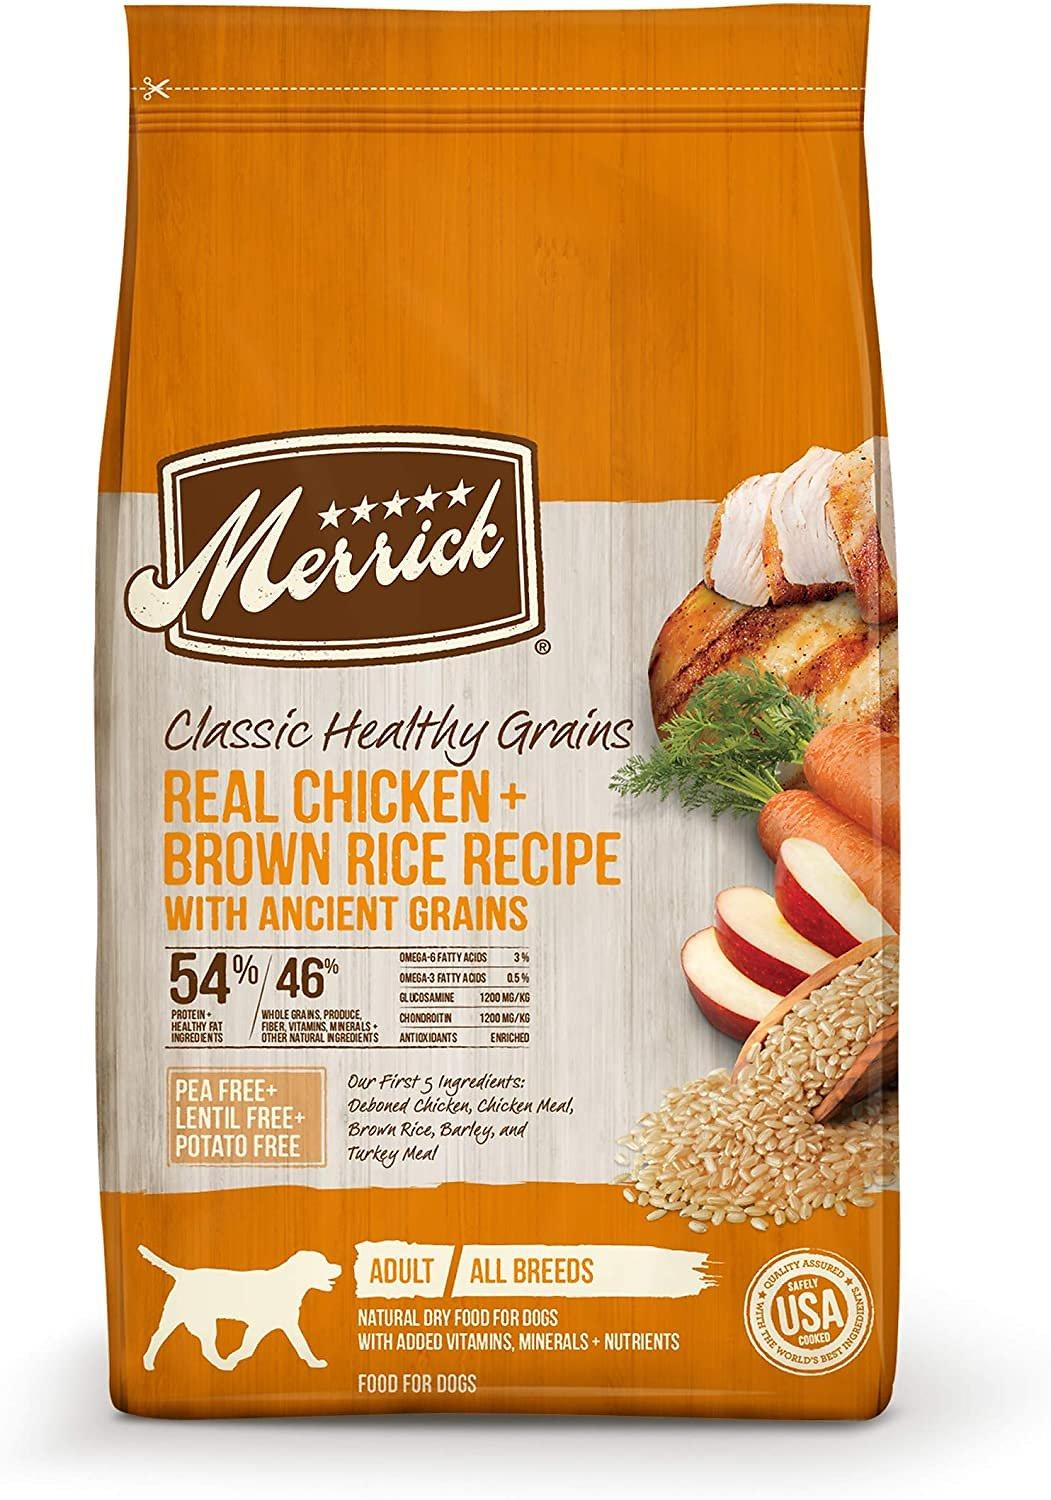 Merrick Classic Healthy Grains Real Chicken + Brown Rice Recipe with Ancient Grains Adult Dry Dog Food, 4-lb